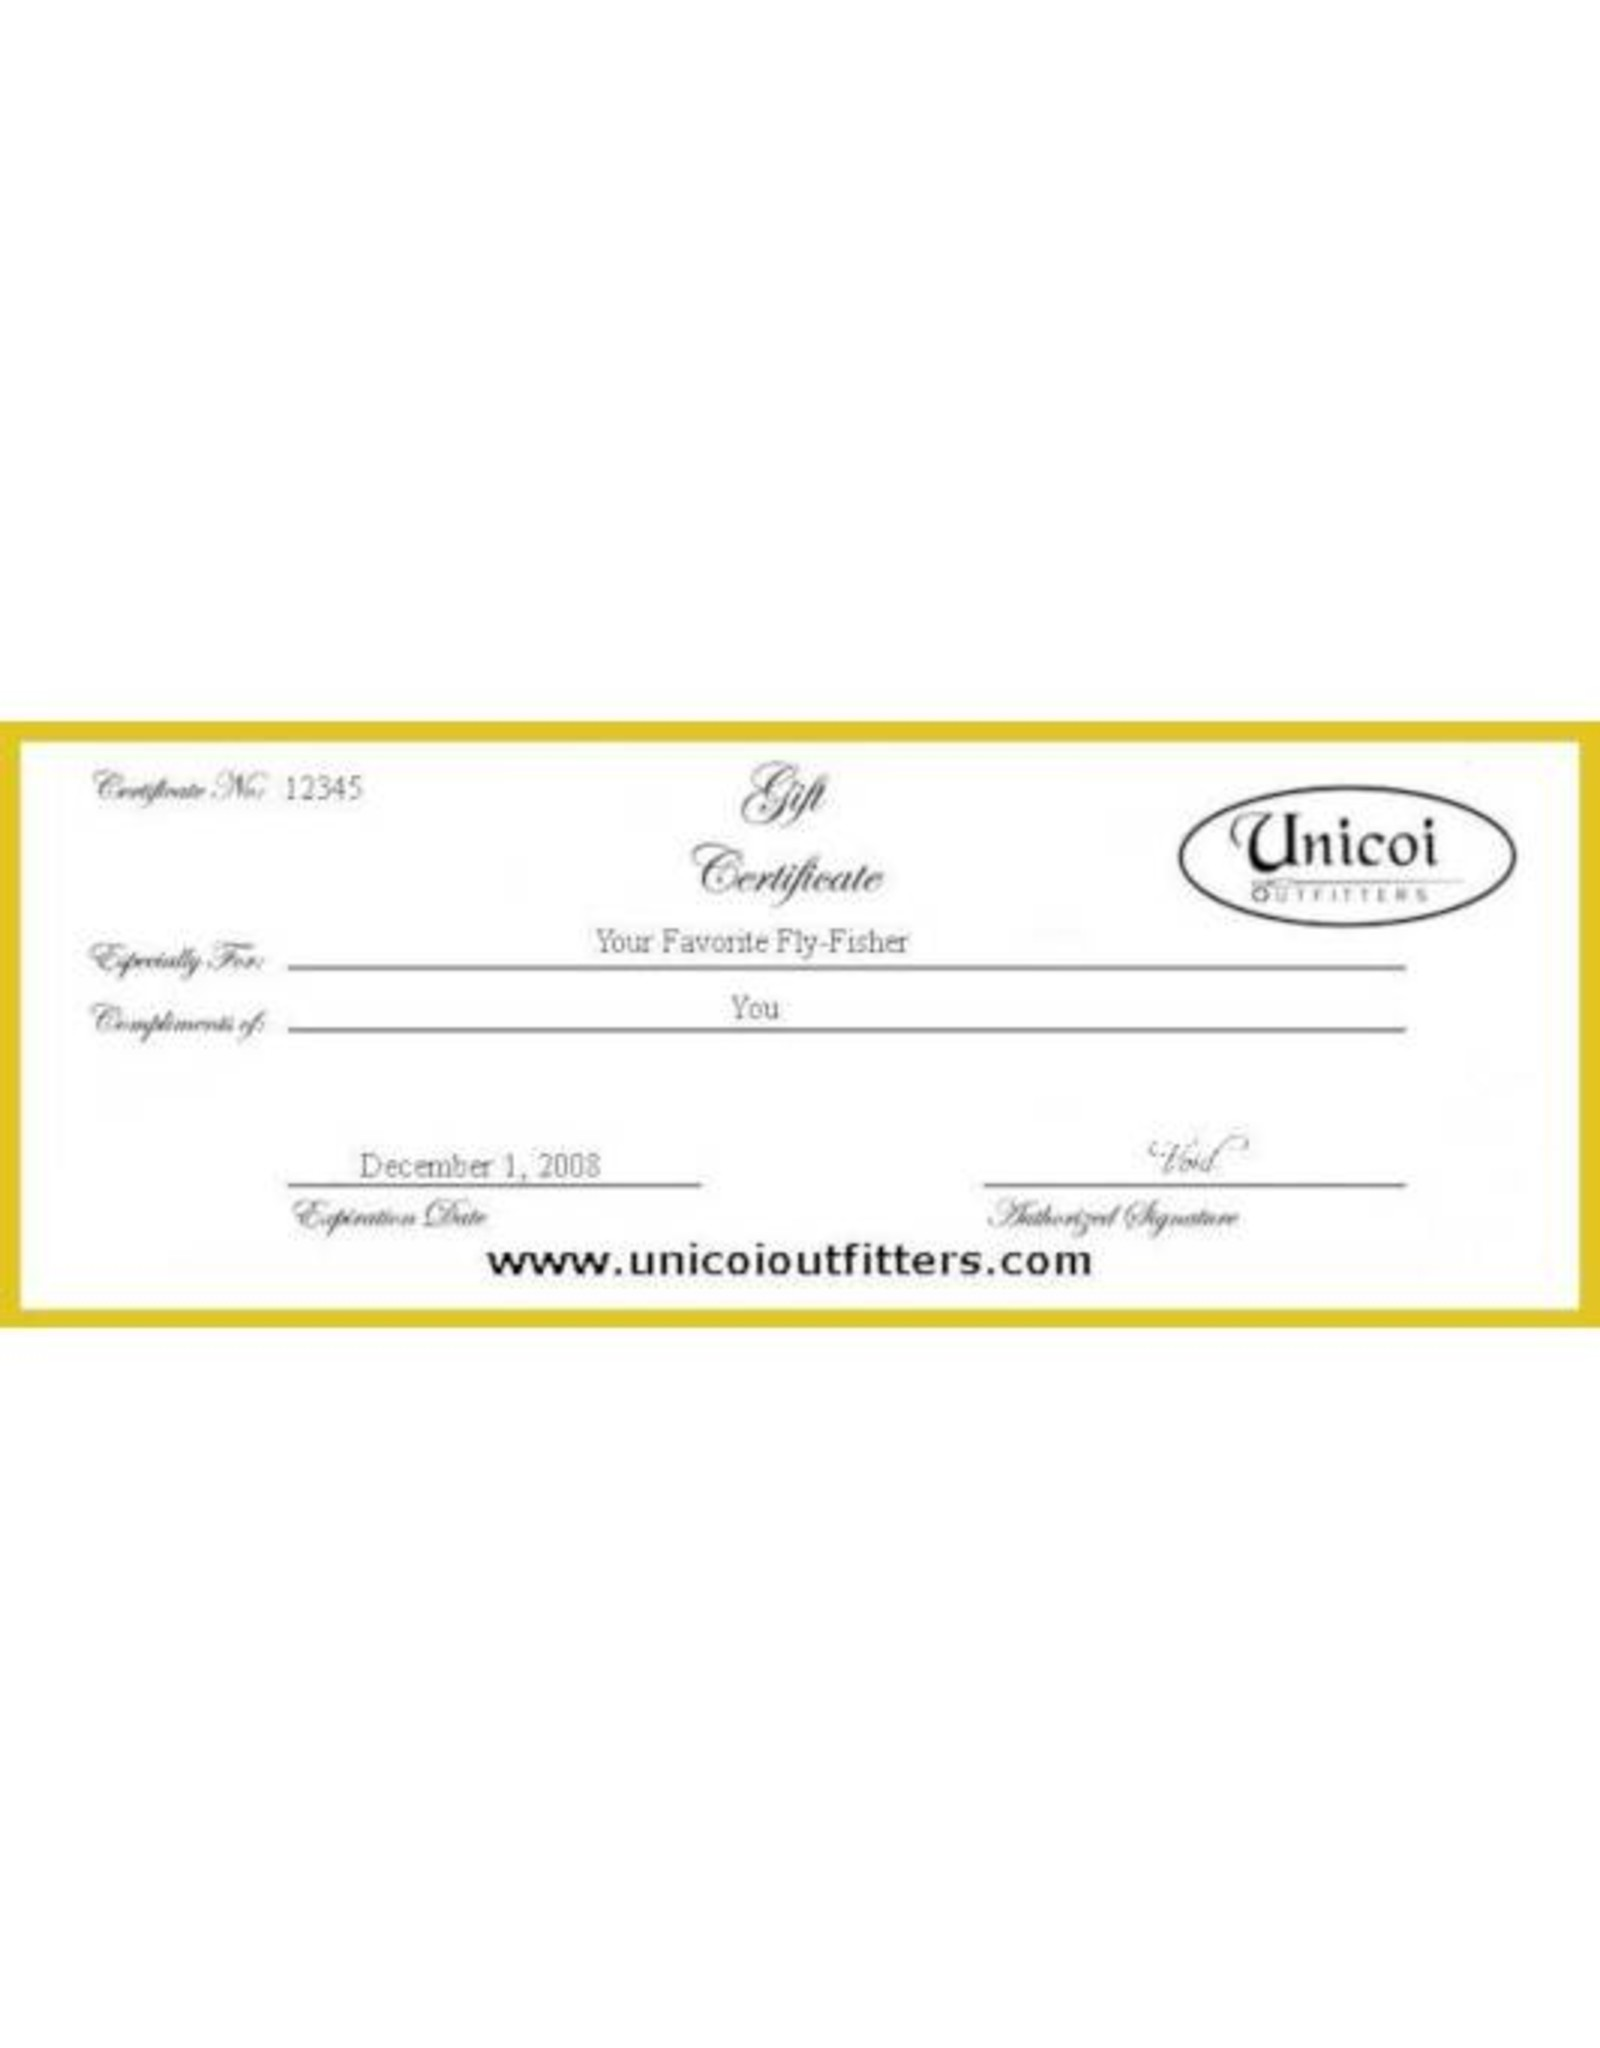 Unicoi Outfitters Gift Certificate - Fly Fishing Class